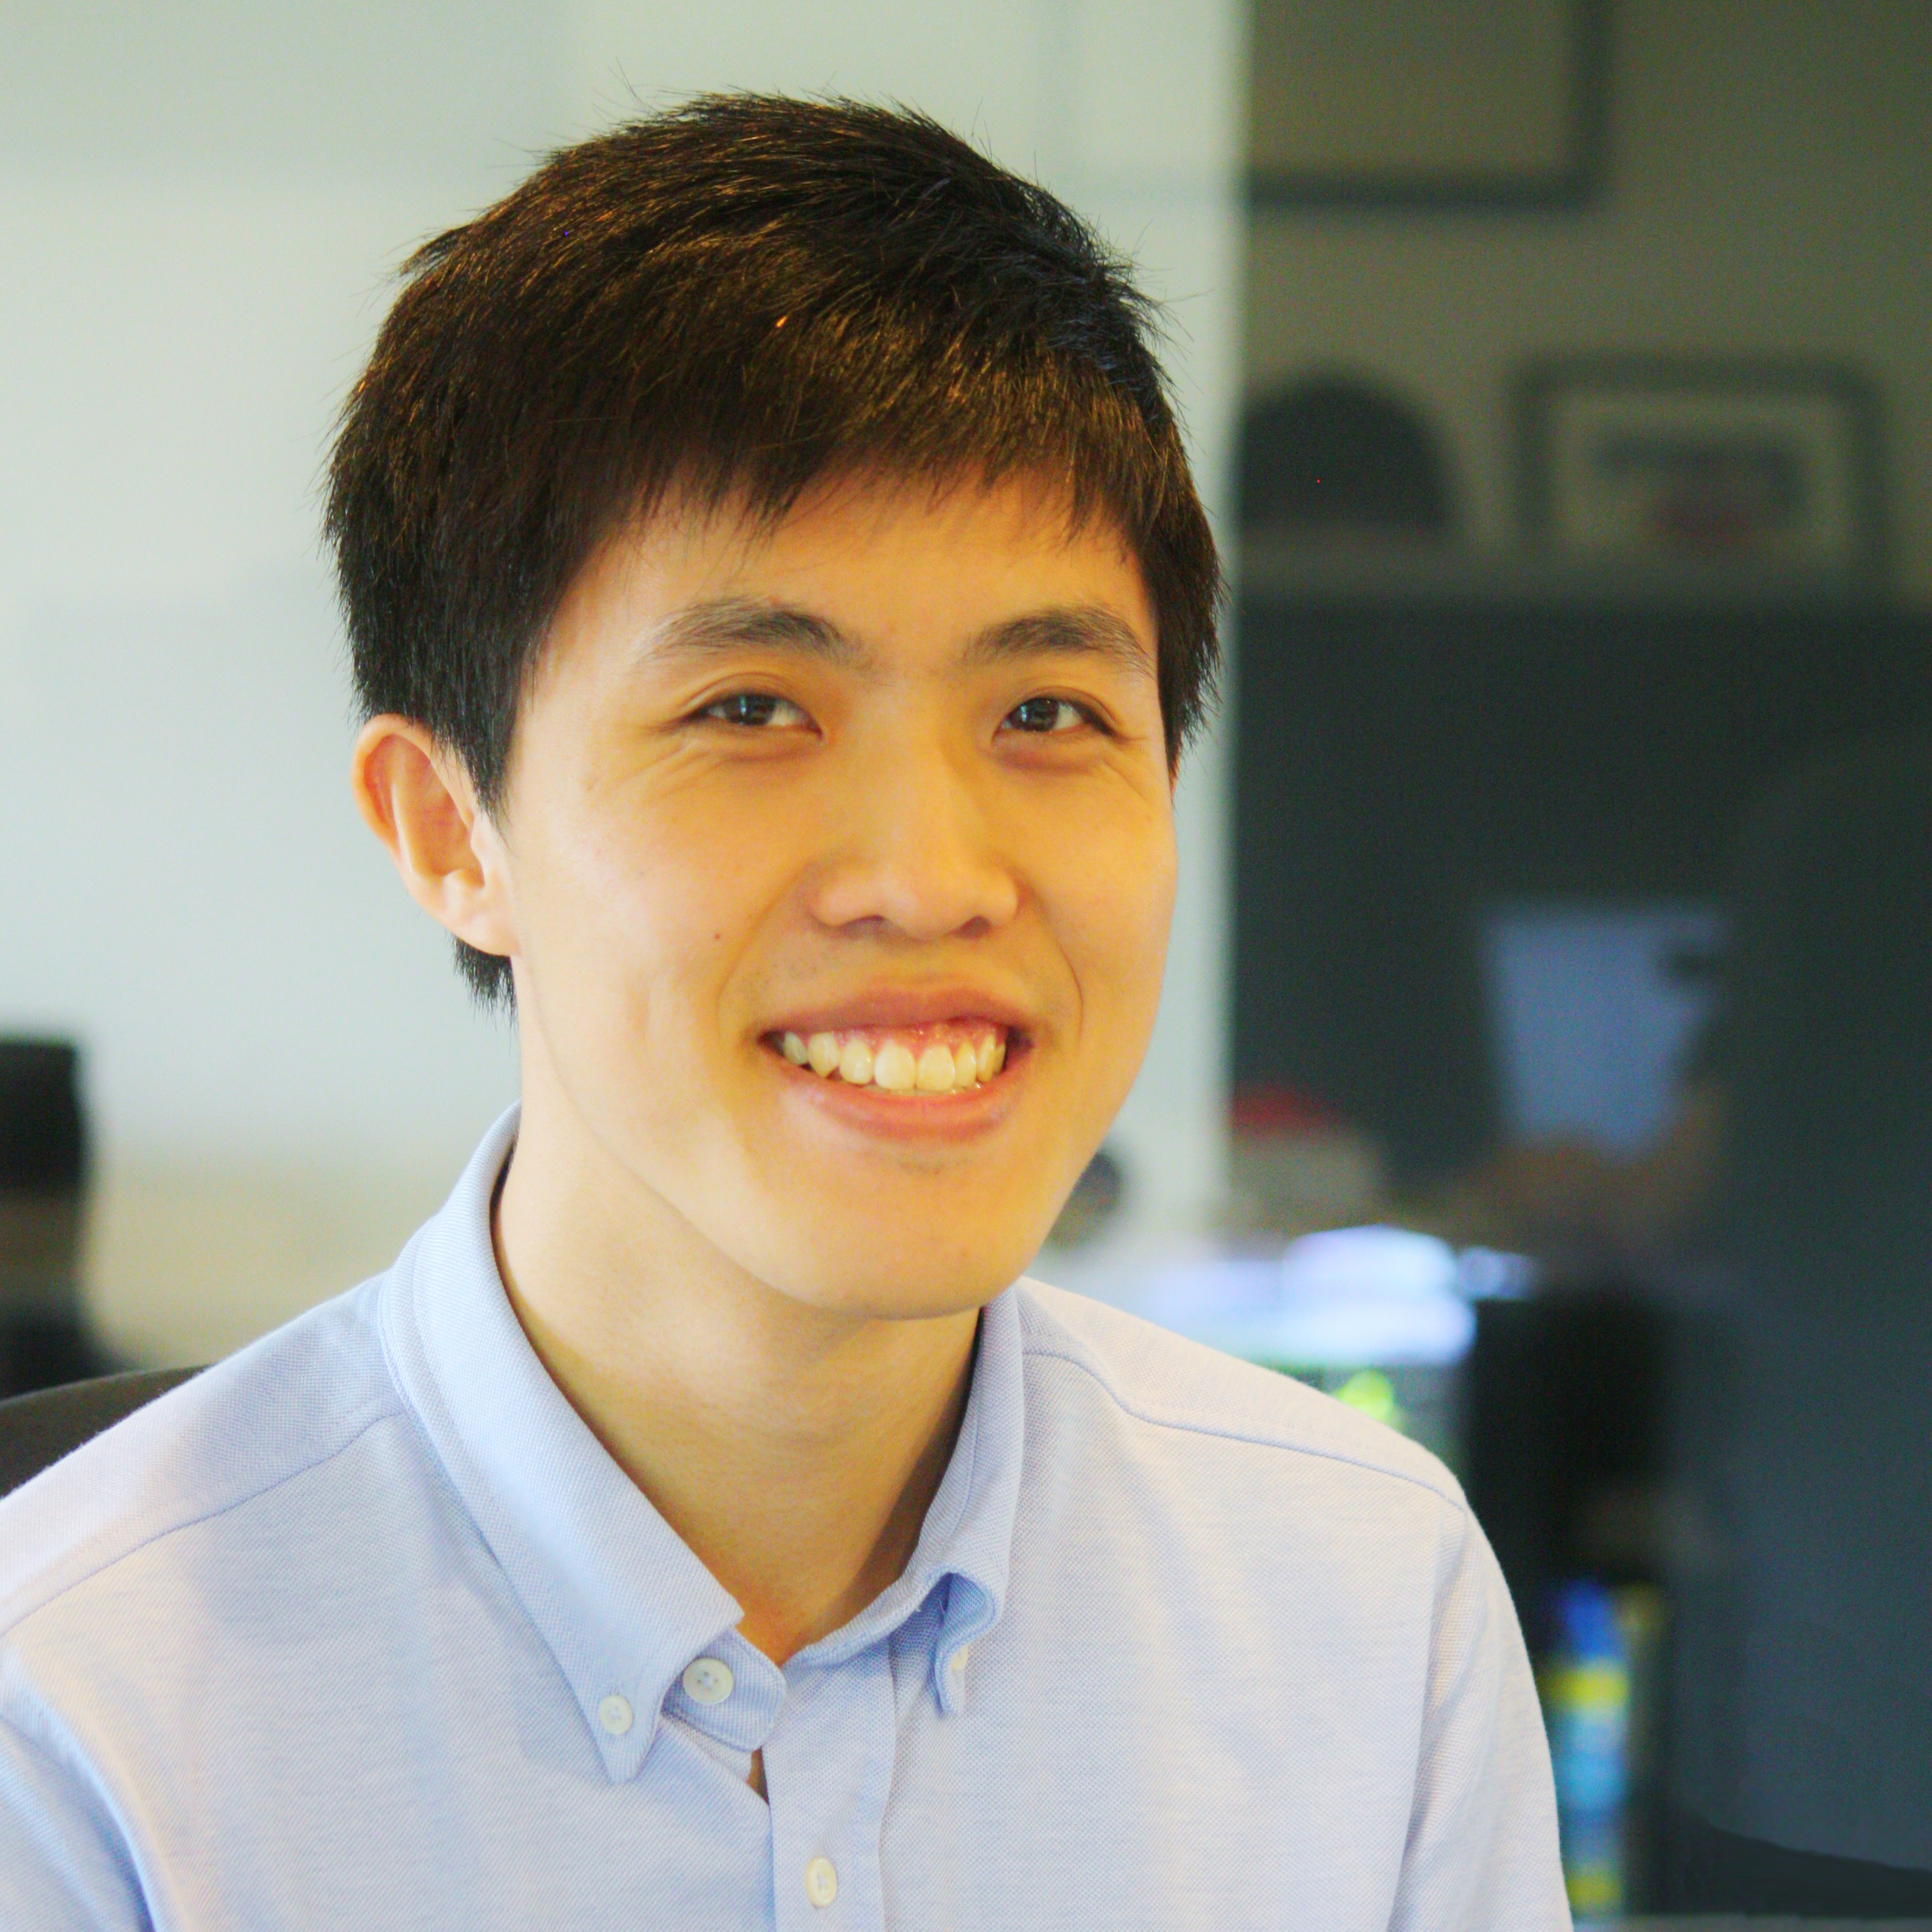 Dave Teo, Project Lead at Singapore Life